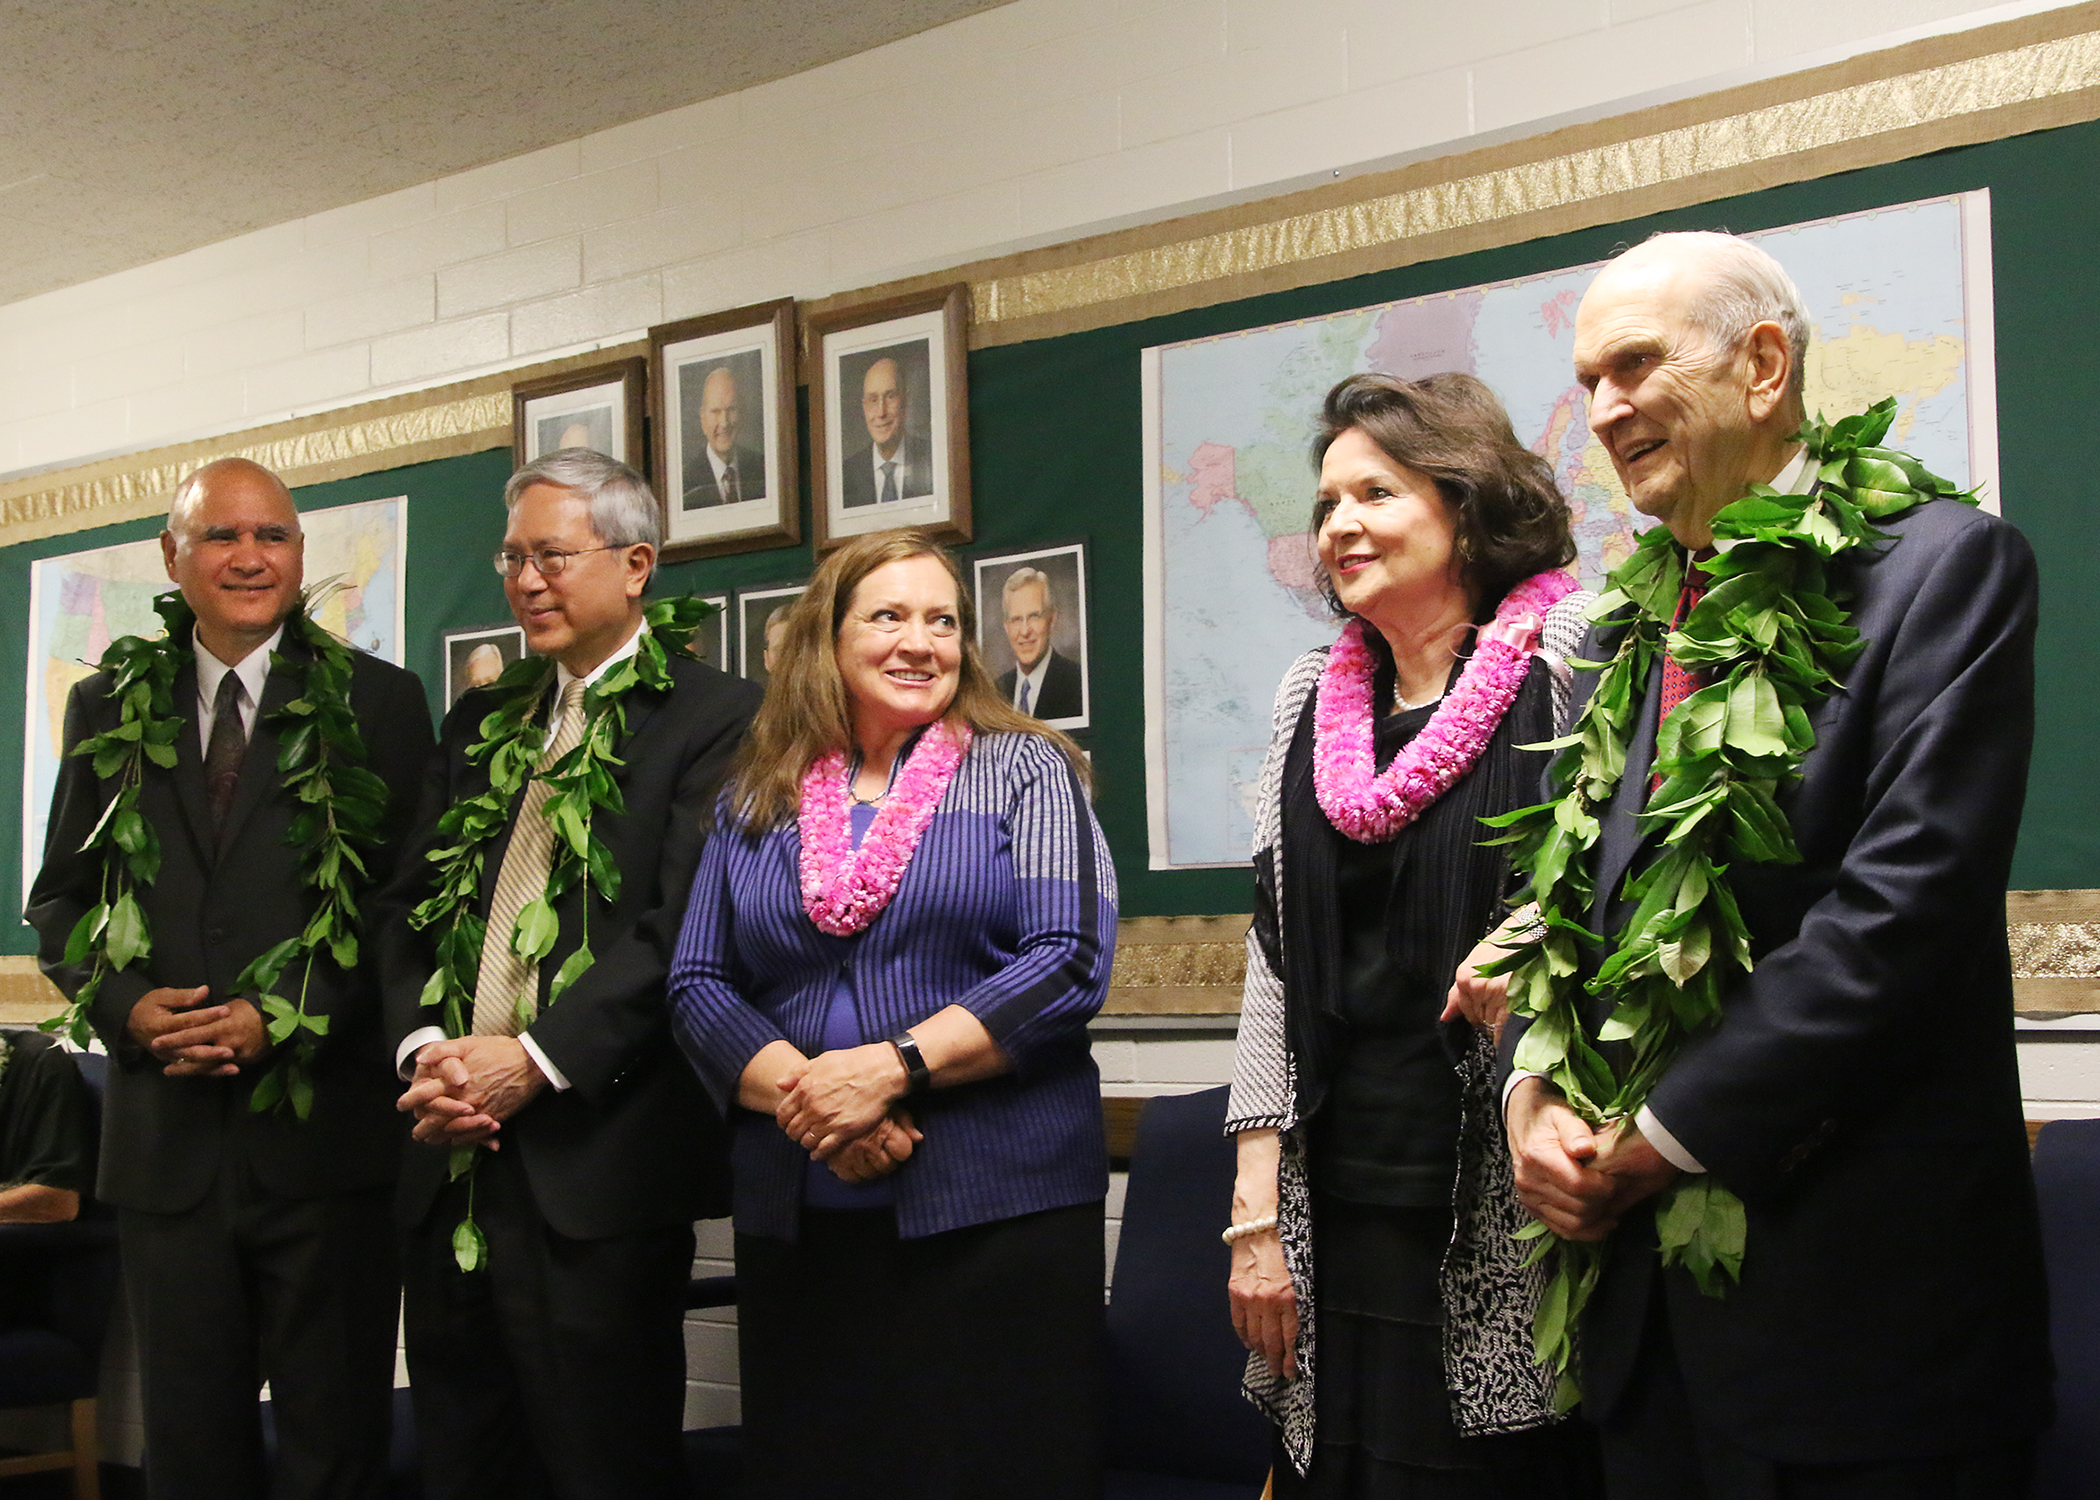 From right to left, President Russell M. Nelson, Sister Wendy Nelson, Sister Susan Gong and Elder Gerrit W. Gong of the Twelve Apostles greet community leaders during a reception prior to the May 16, 2019, devotional in the Kona Hawaii Stake center. Af left is Elder Aley K. Auna Jr., an Area Seventy.